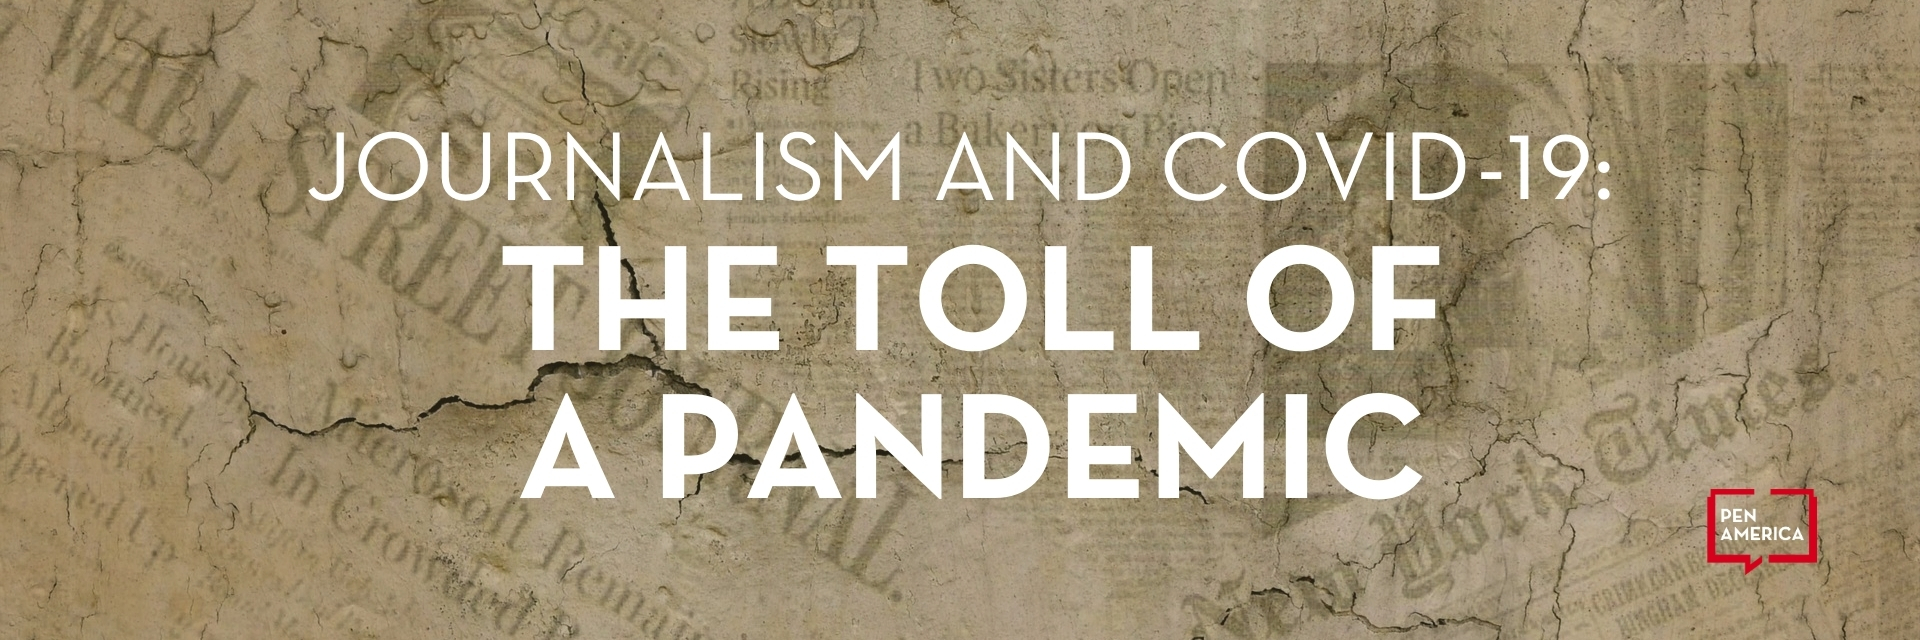 "The text ""Journalism and COVID-19: The Toll of a Pandemic"" and PEN America's logo overlaid on a set of distressed newspapers"